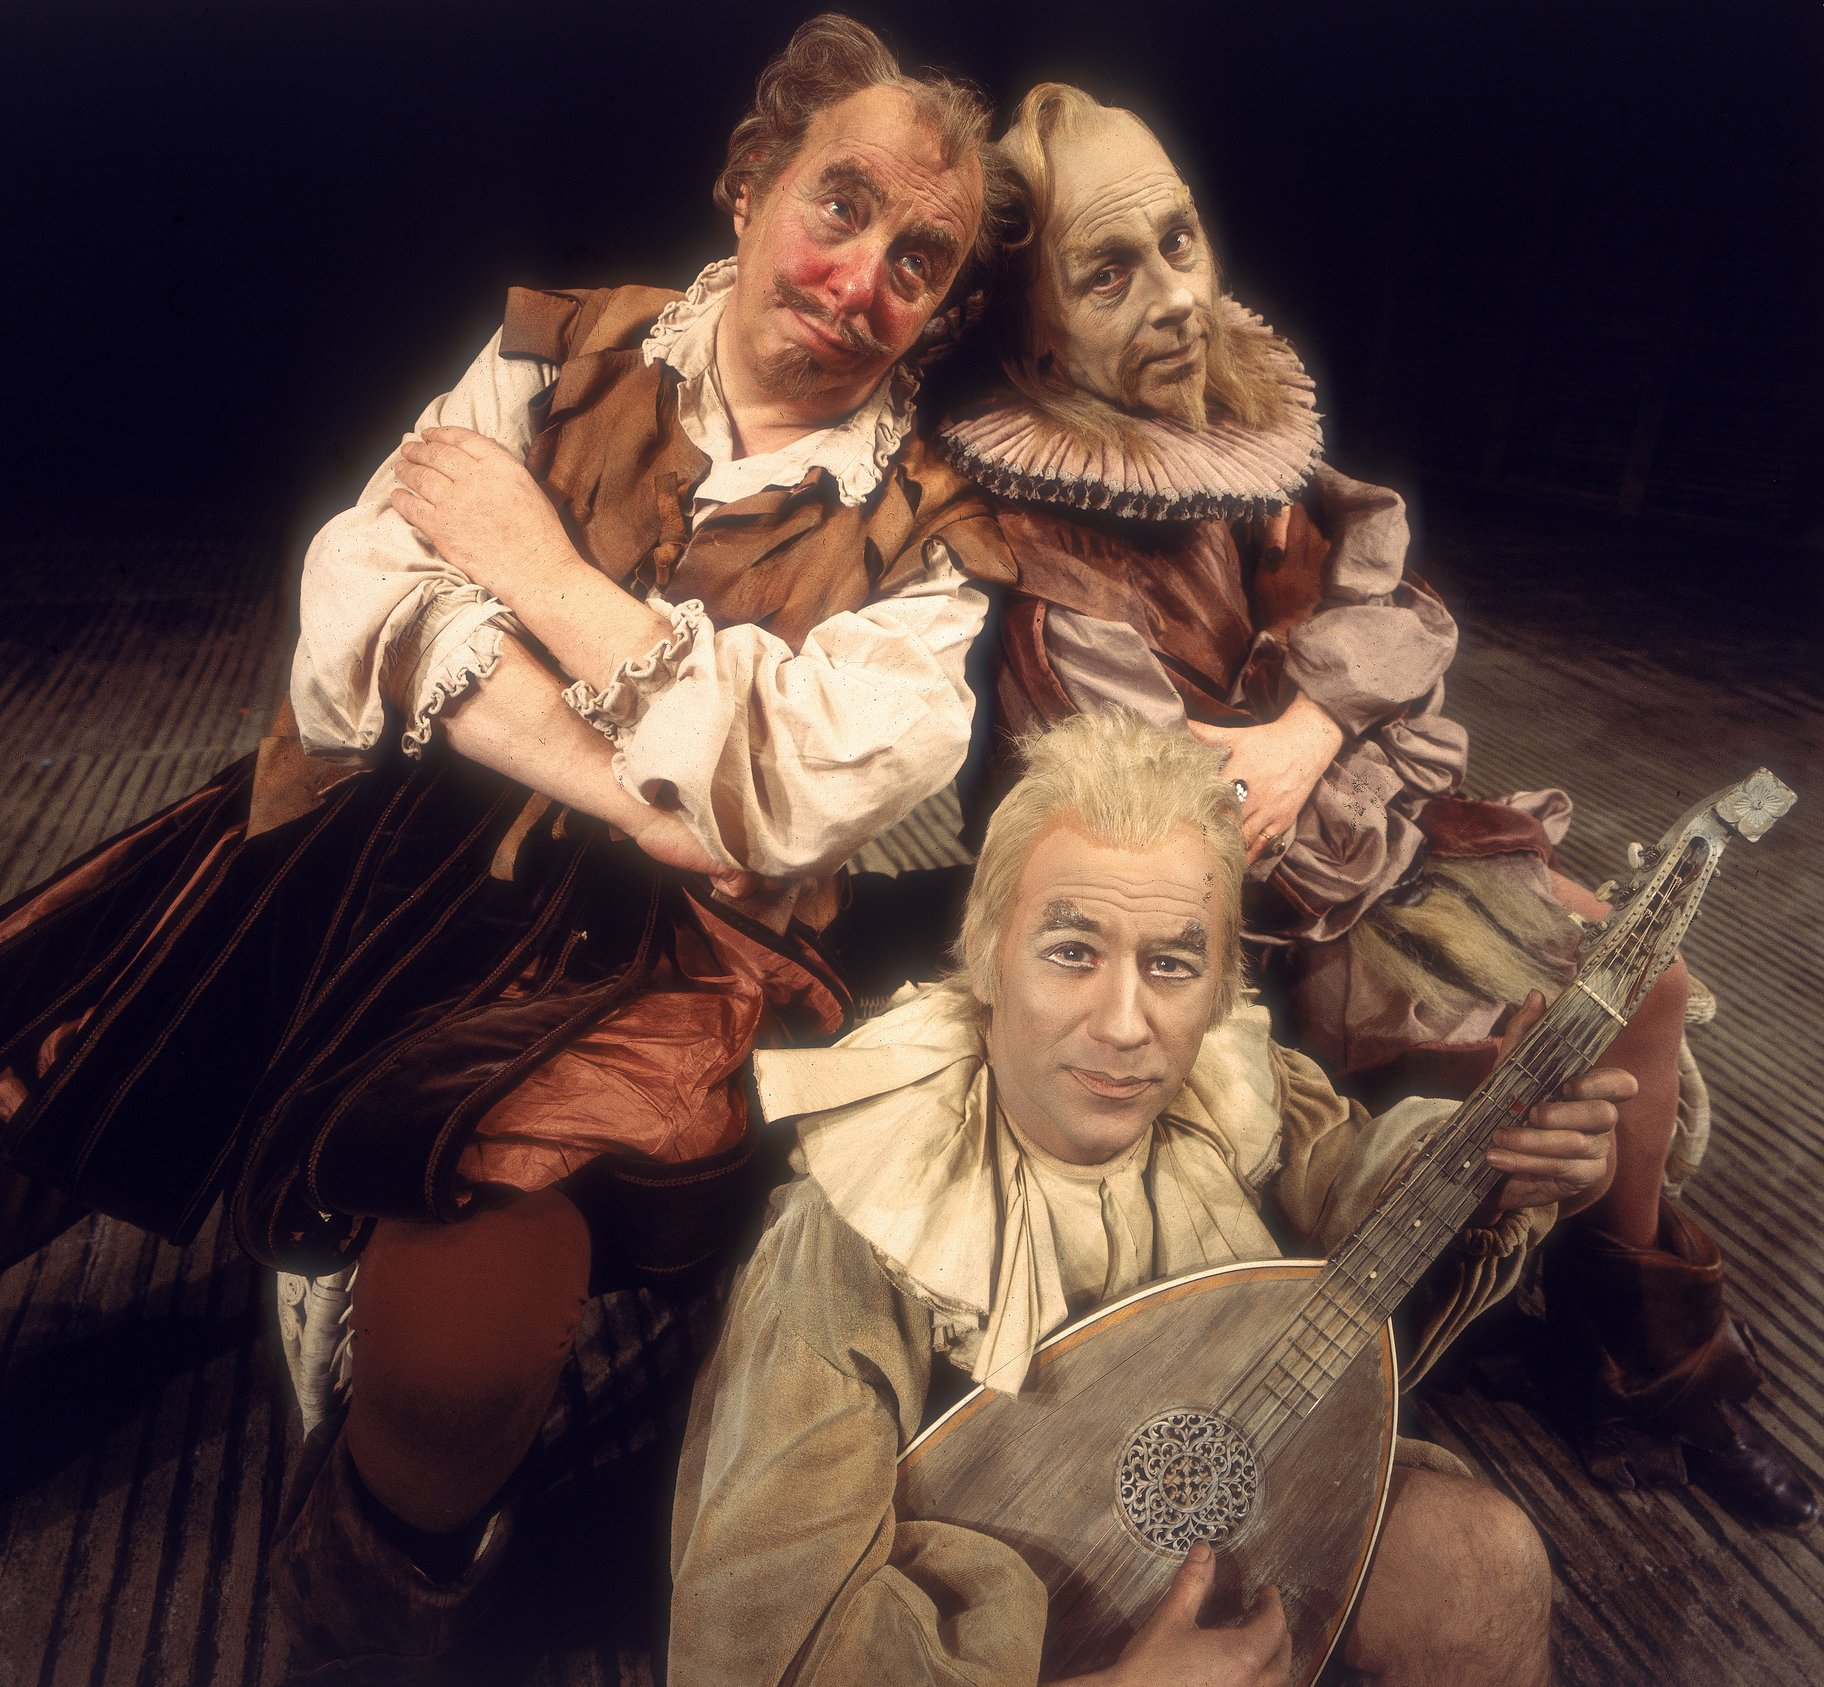 Sir Toby (left), Feste (center) and Sir Andrew (right) seated together.